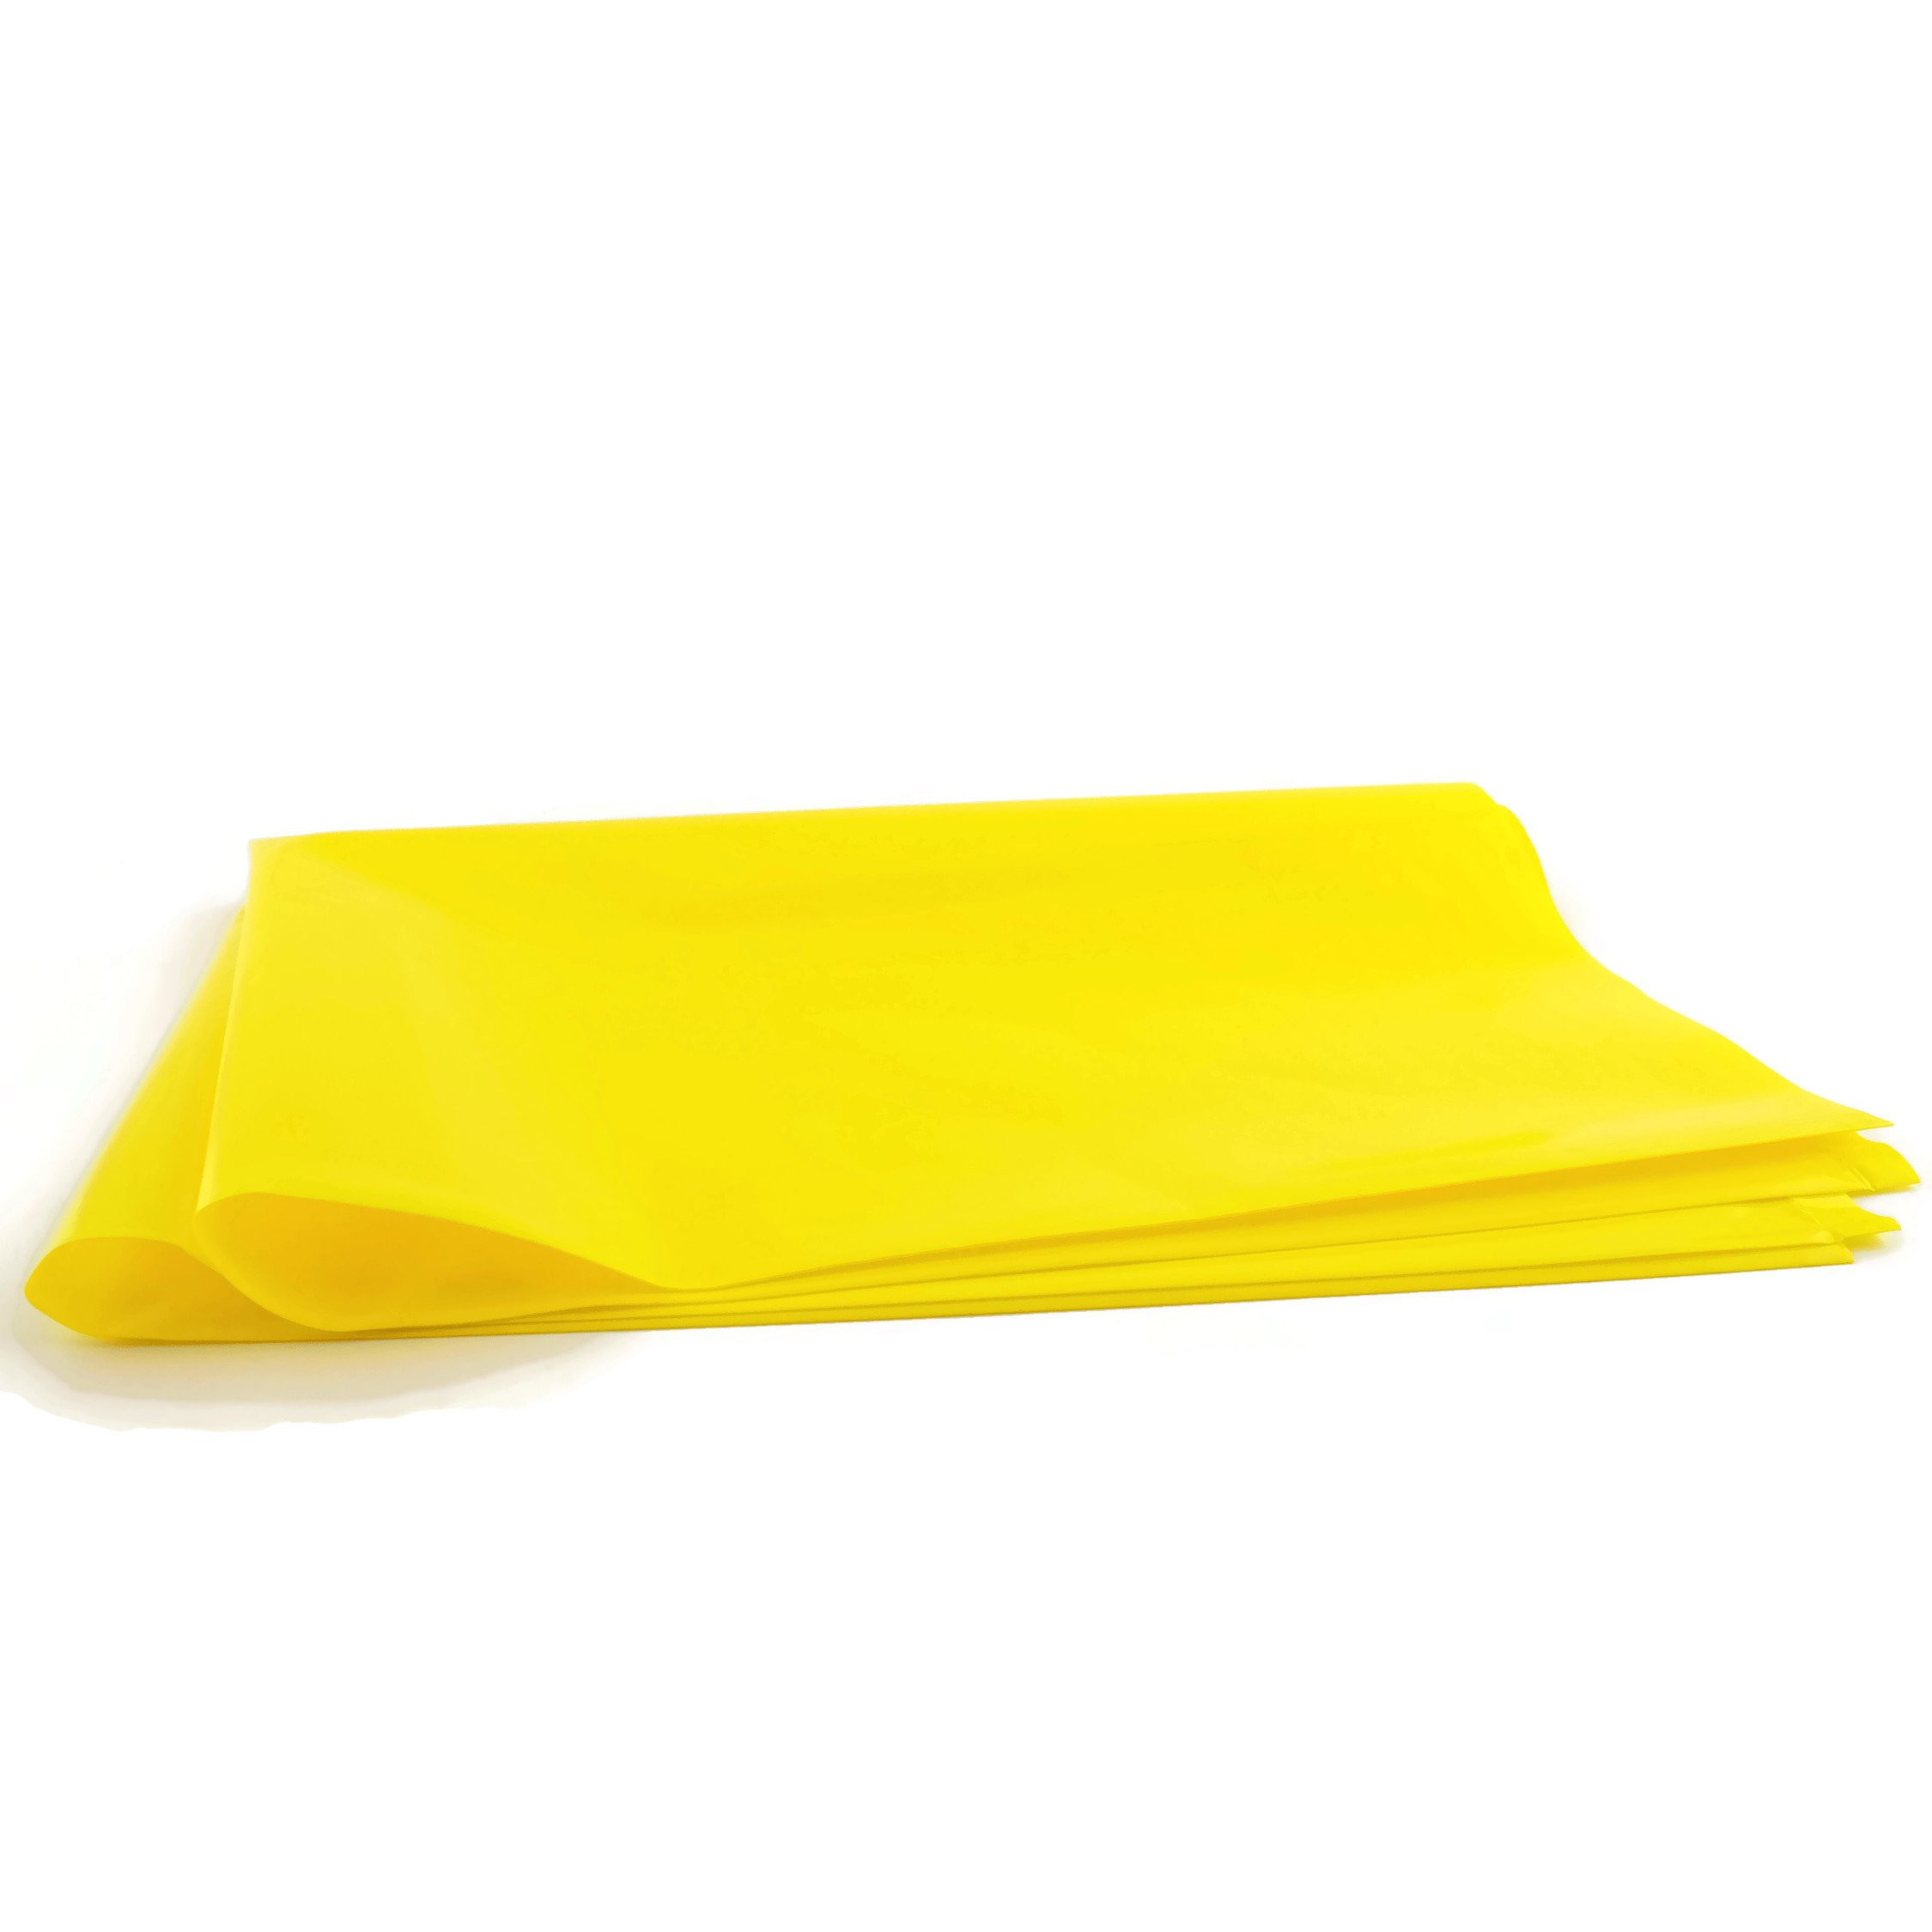 Radioactive Waste Disposal Bags, 4 Mil Thick, 18 x 24 Inches, Yellow Opaque, Unprinted, 25 per Package